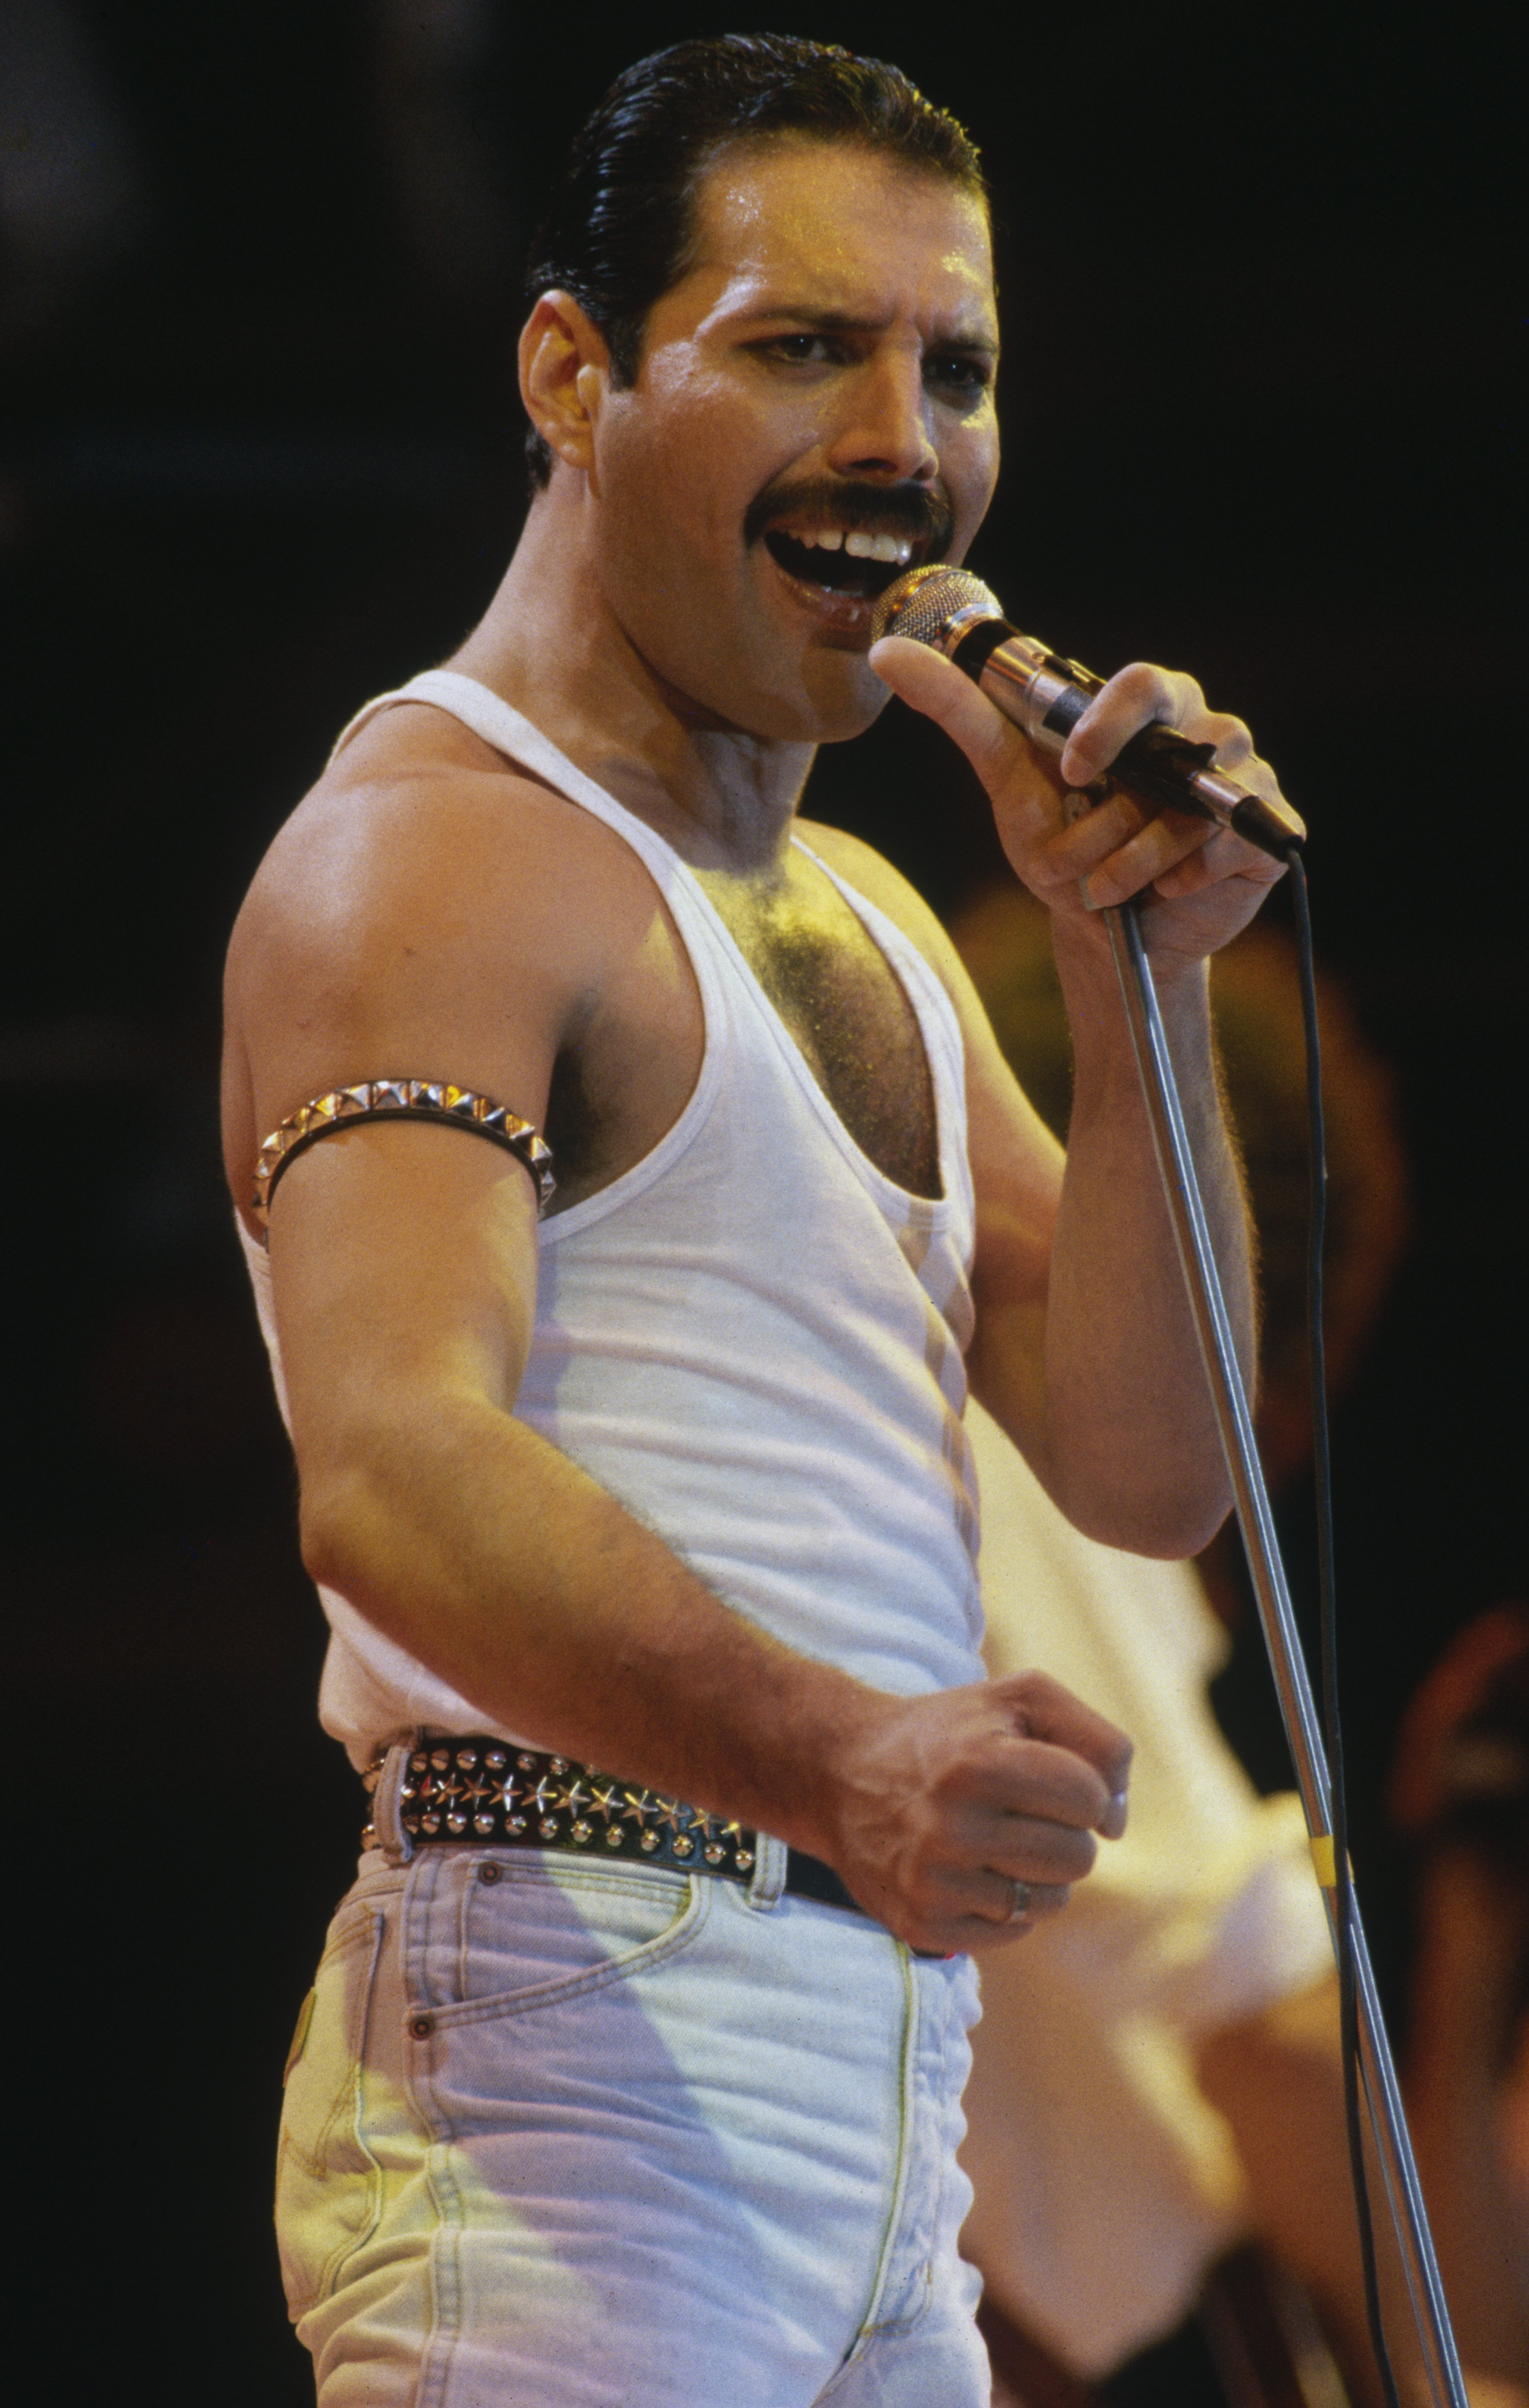 Freddie Mercury of Queen performs during Live Aid at Wembley Stadium on 13 July 1985. | Photo: GettyImages